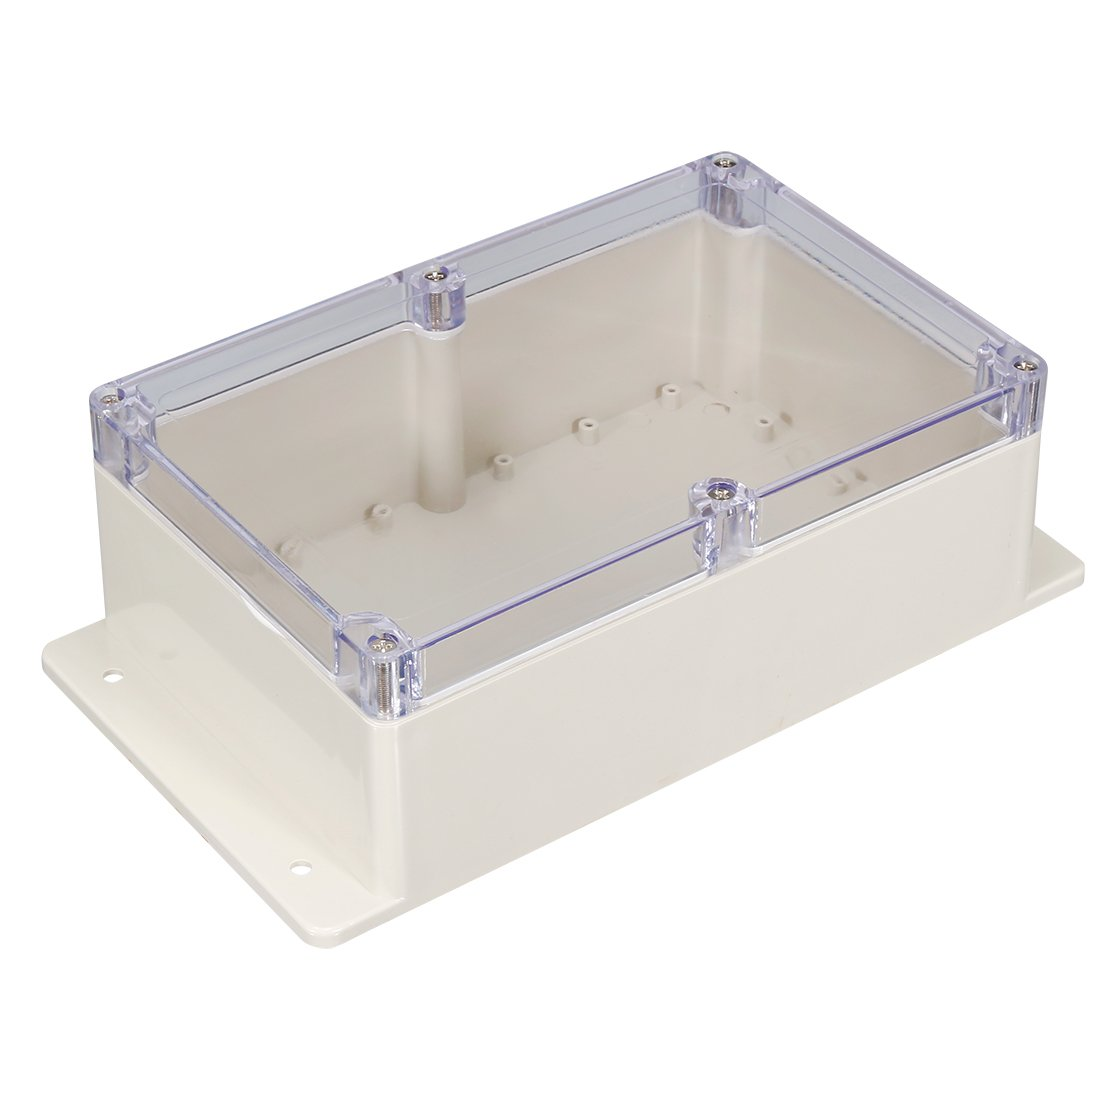 sourcingmap 158x90x46mm//6.22x3.54x1.81inch Wateproof Electronic ABS Plastic DIY Junction Project Box Enclosure Case Outdoor//Indoor with Clear Cover